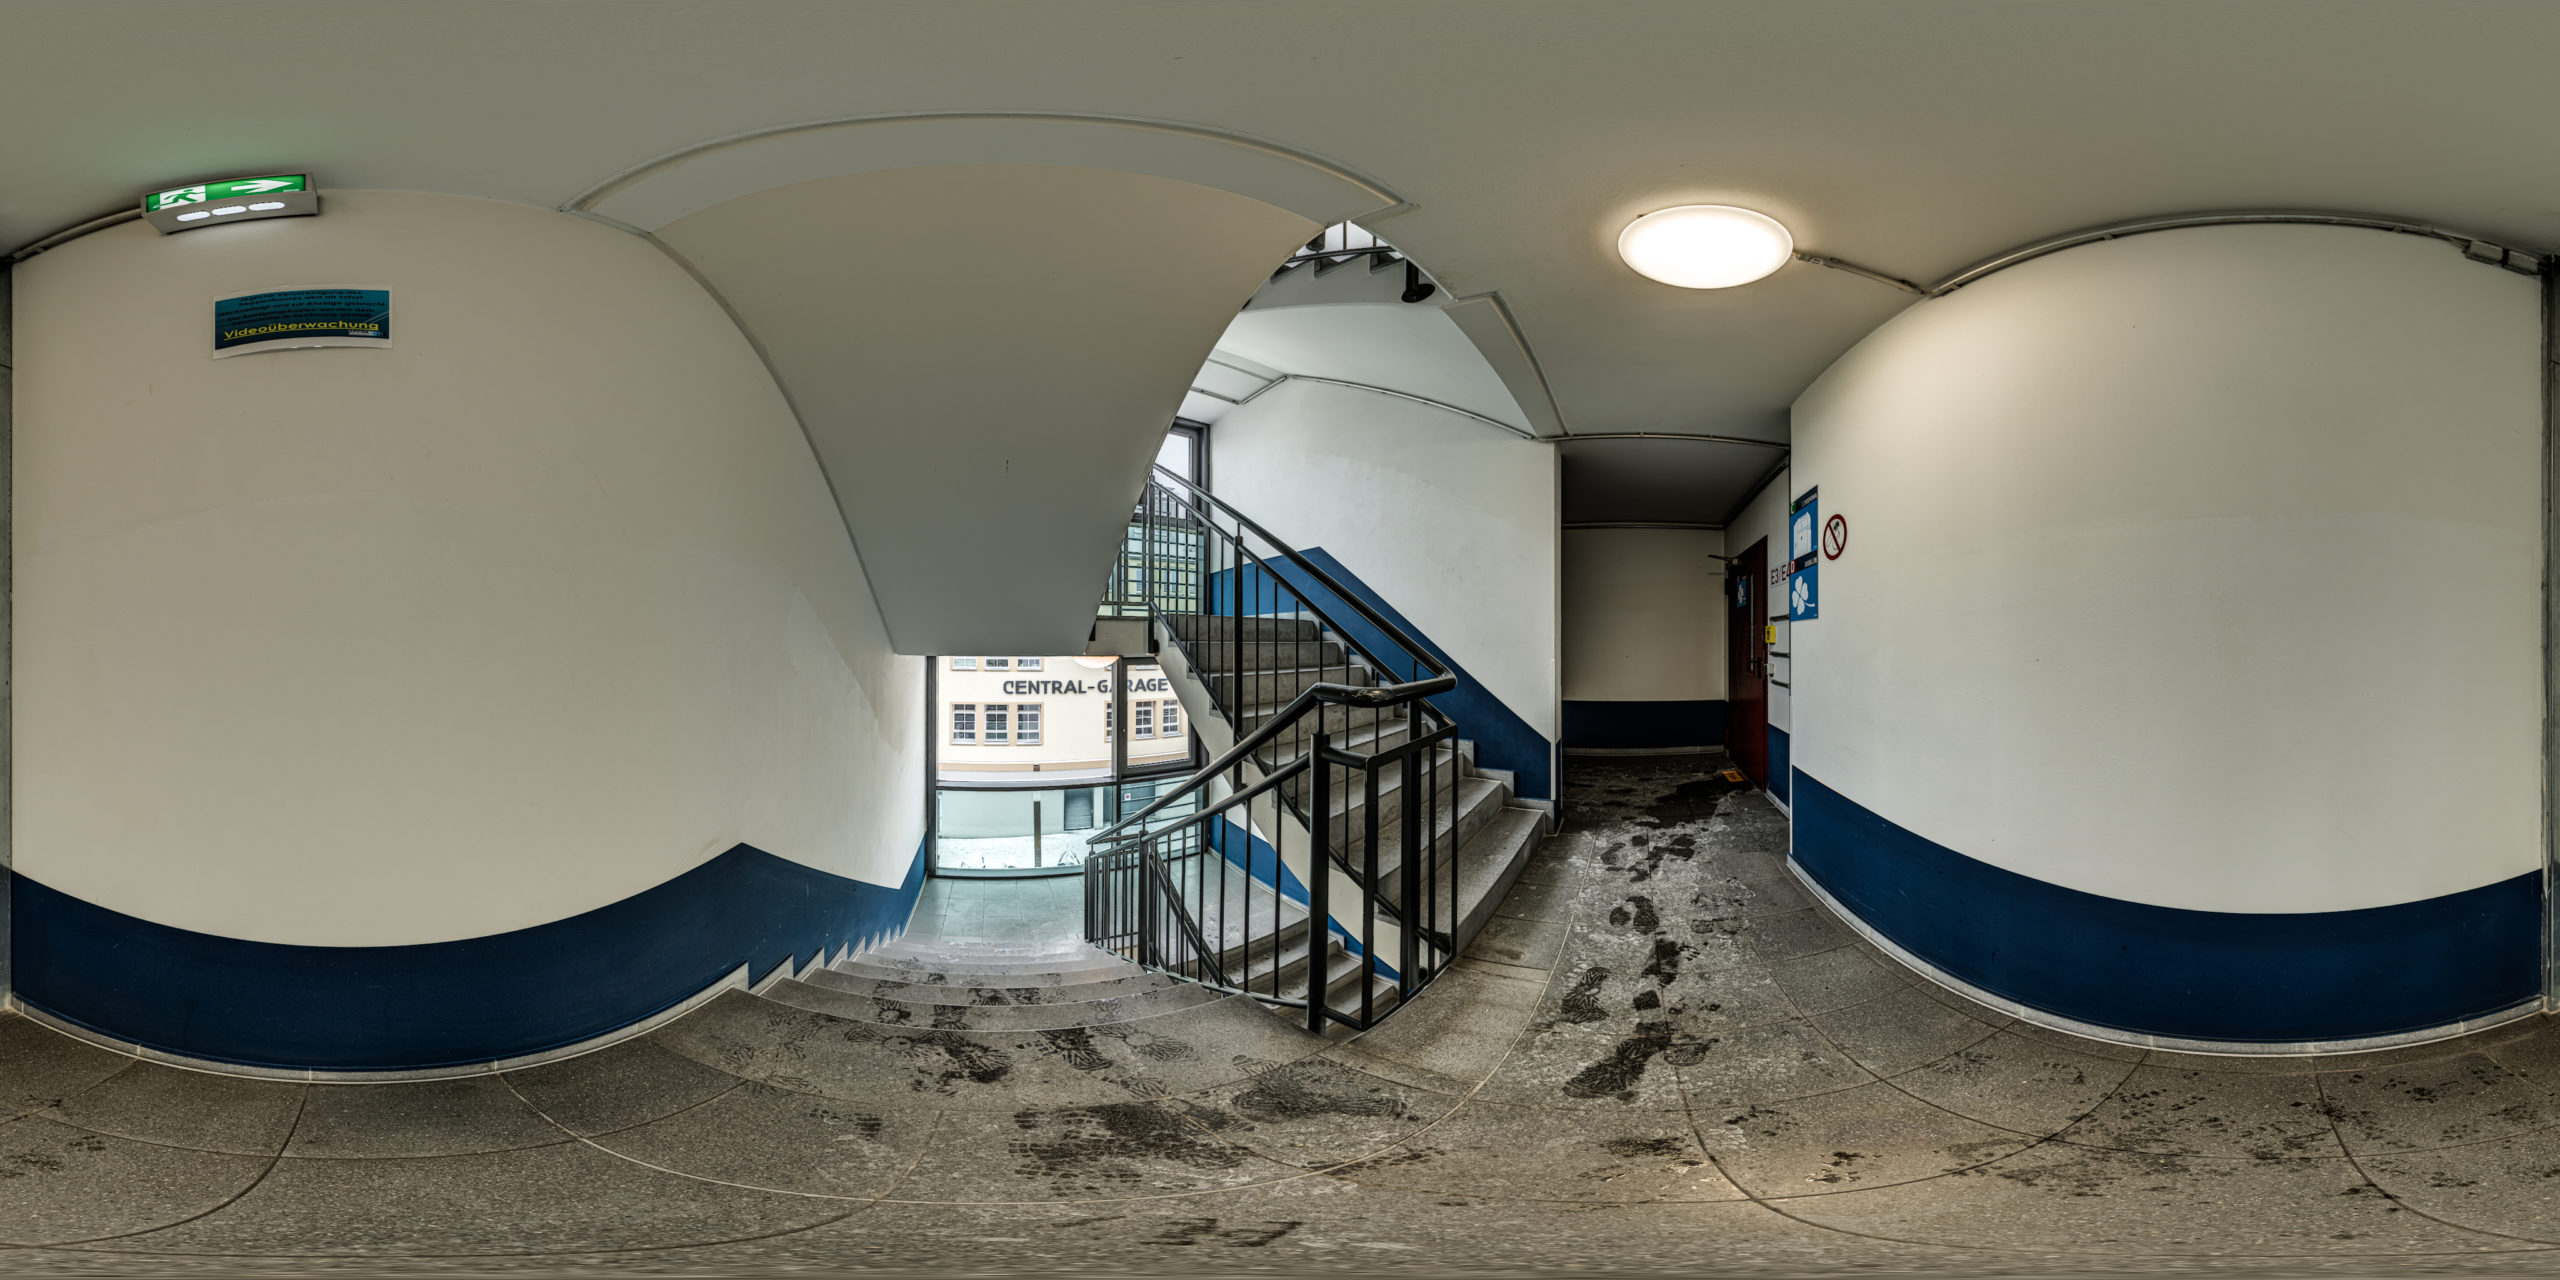 HDRI-Skies-Parking-Garage-Mathildenstraße-Stairwell-Fürth